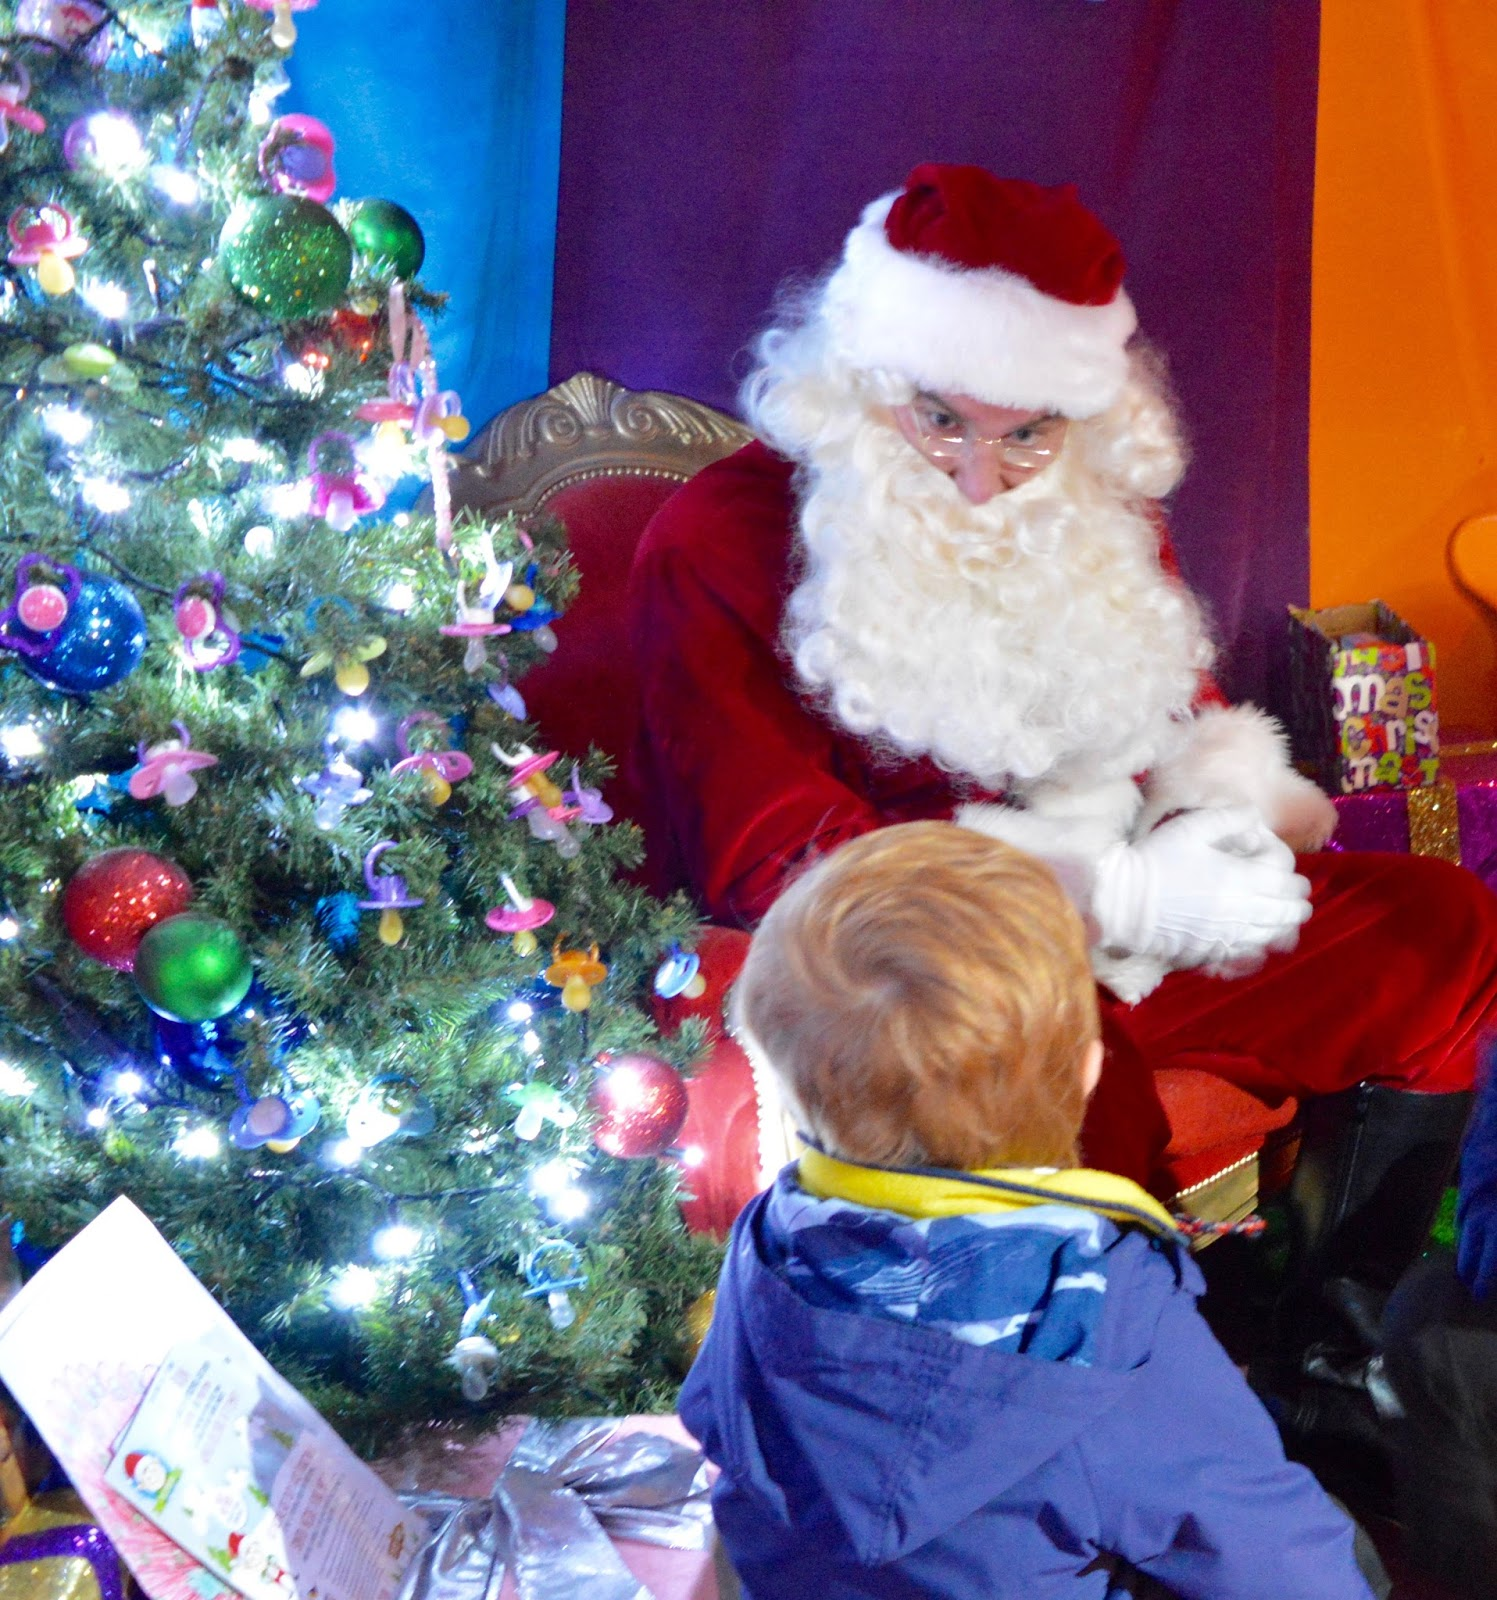 Visiting the FREE Santa's Grotto at intu Metrocentre | All You Need to Know including queue times, when's best to visit, your Playmobil Gift and photographs of Santa Claus - Santa and dummy tree